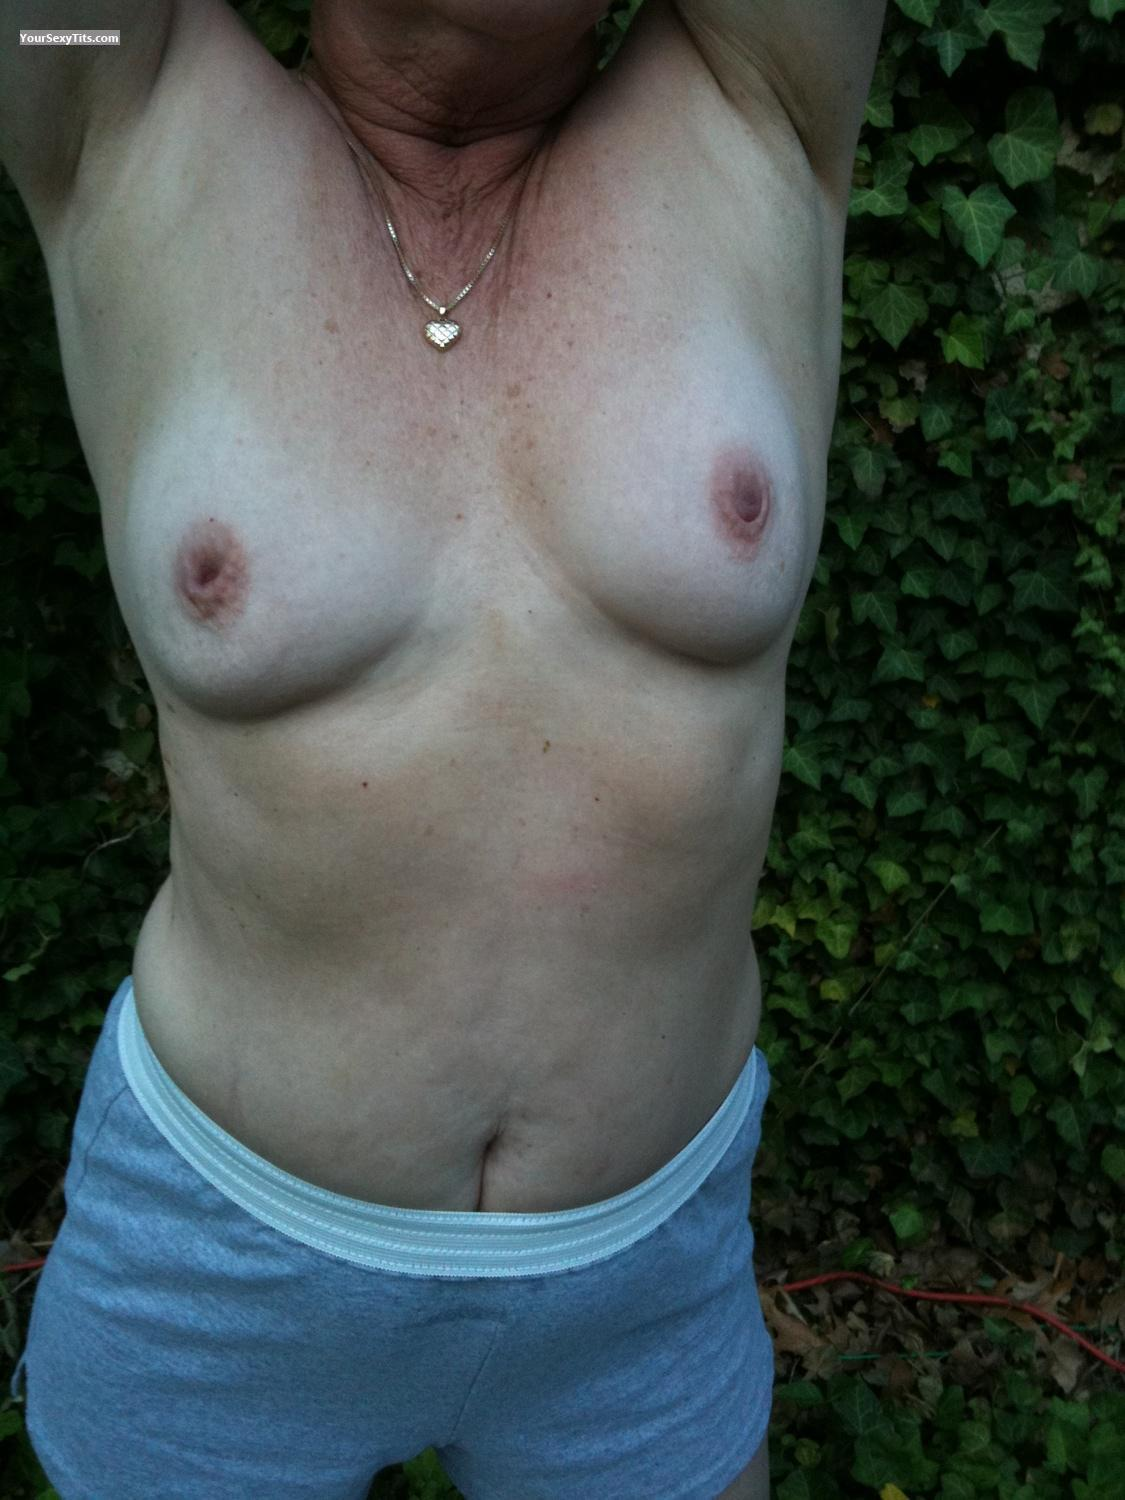 Tit Flash: Small Tits By IPhone - Hotflash from United States